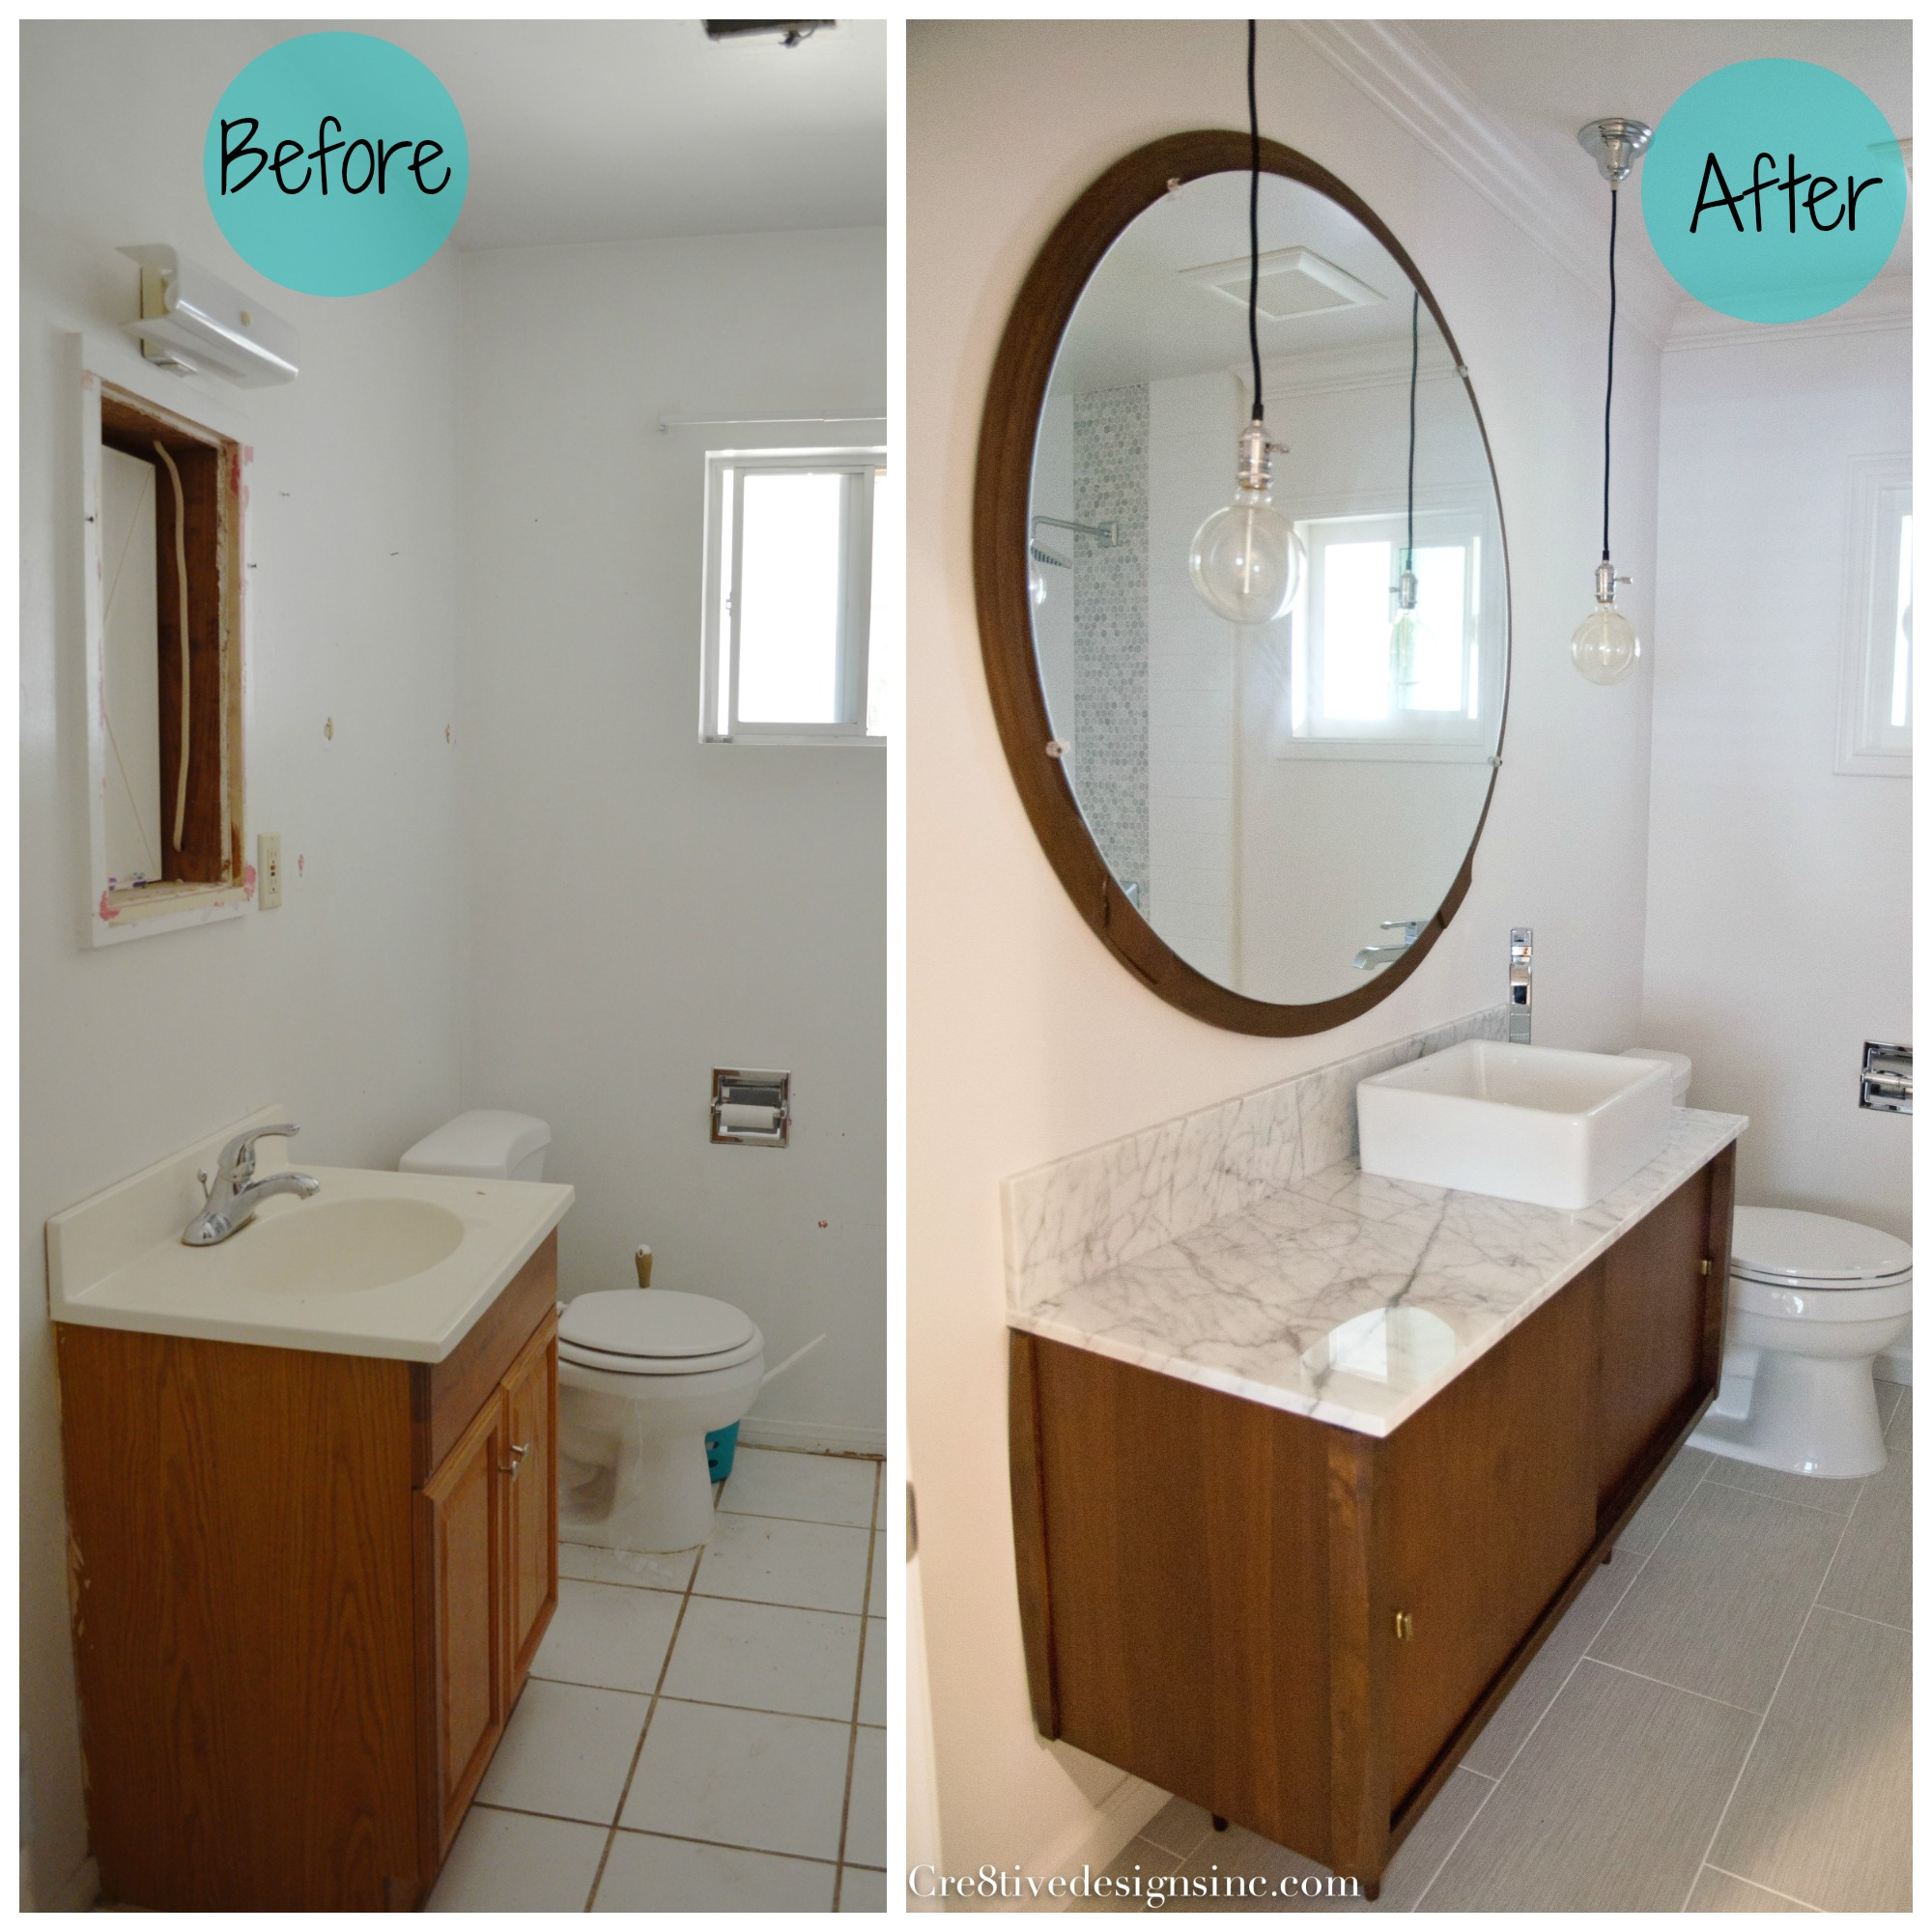 Elegant before and after Mid century modern bathroom